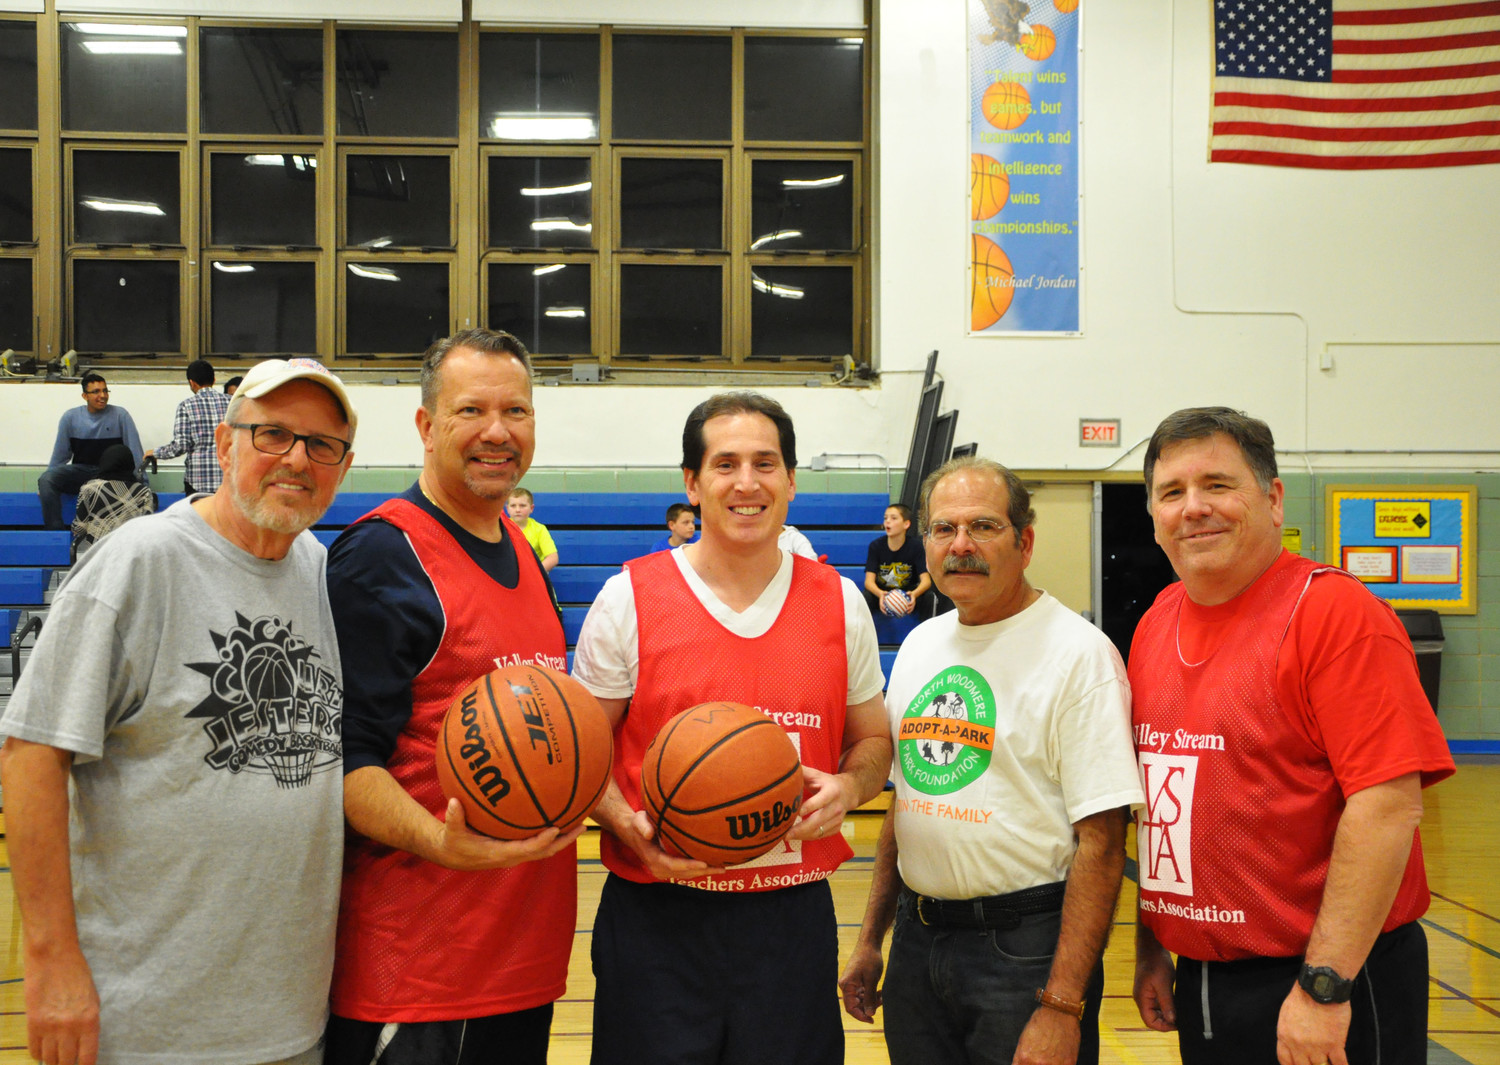 Larry Parker, left, from the Court Jesters, Valley Stream Mayor Ed Fare, State Sen. Todd Kaminsky, Nassau County District Court Judge candidate Gary Carlton, Valley Stream Teachers' Association President Rich Adams gathered for the game on Oct. 27.